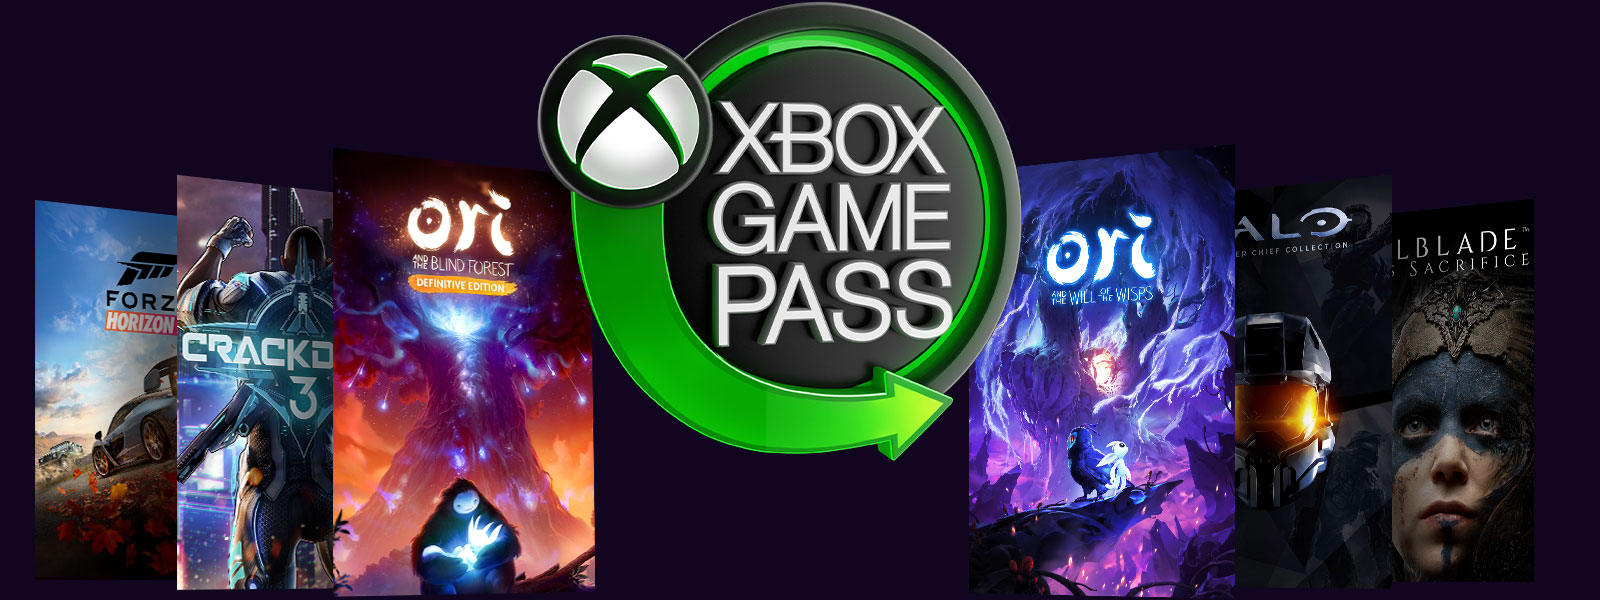 Logo Xbox Game Pass z grafikami z pudełek gier Ori and the Will of the Wisps, Ori and the Blind Forest, Crackdown 3, Halo, Forza Horizon 4 i Hellblade